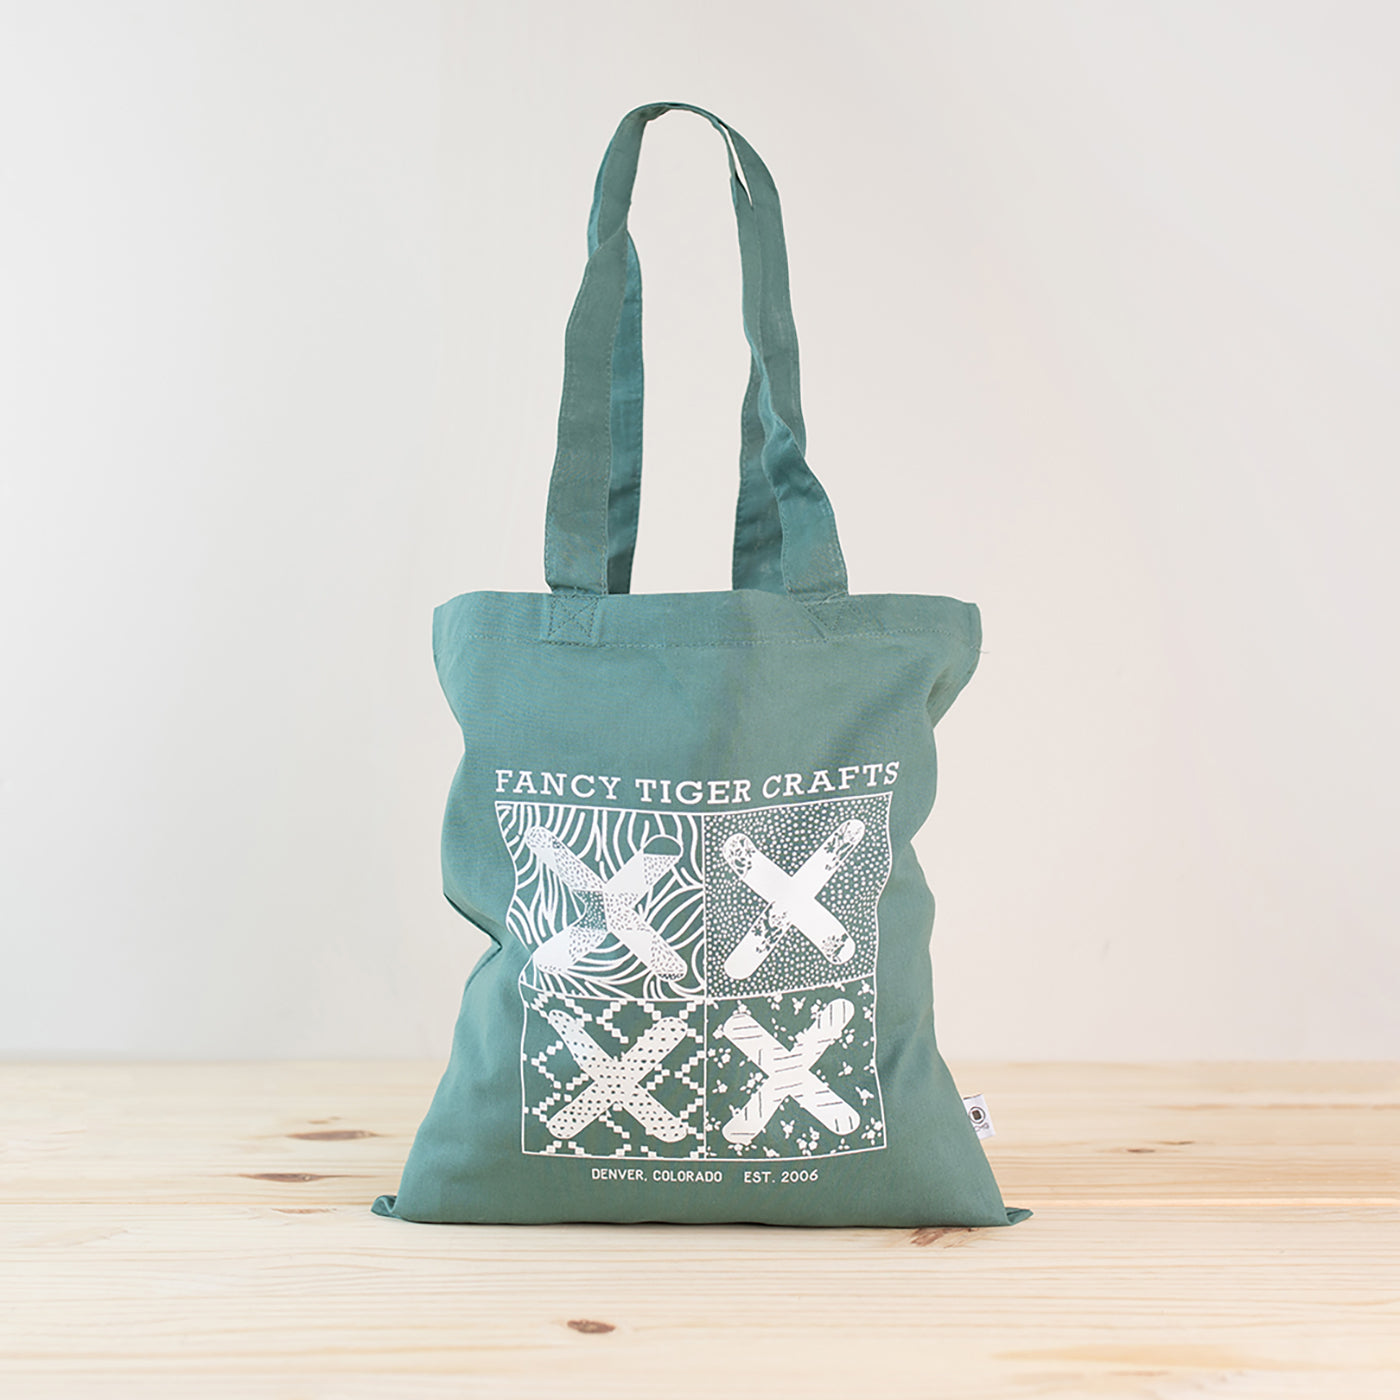 This is an image of a reusuable tote bag with the Fancy Tiger Crafts logo on the front of it sitting in front of a white wall and on a wood floor